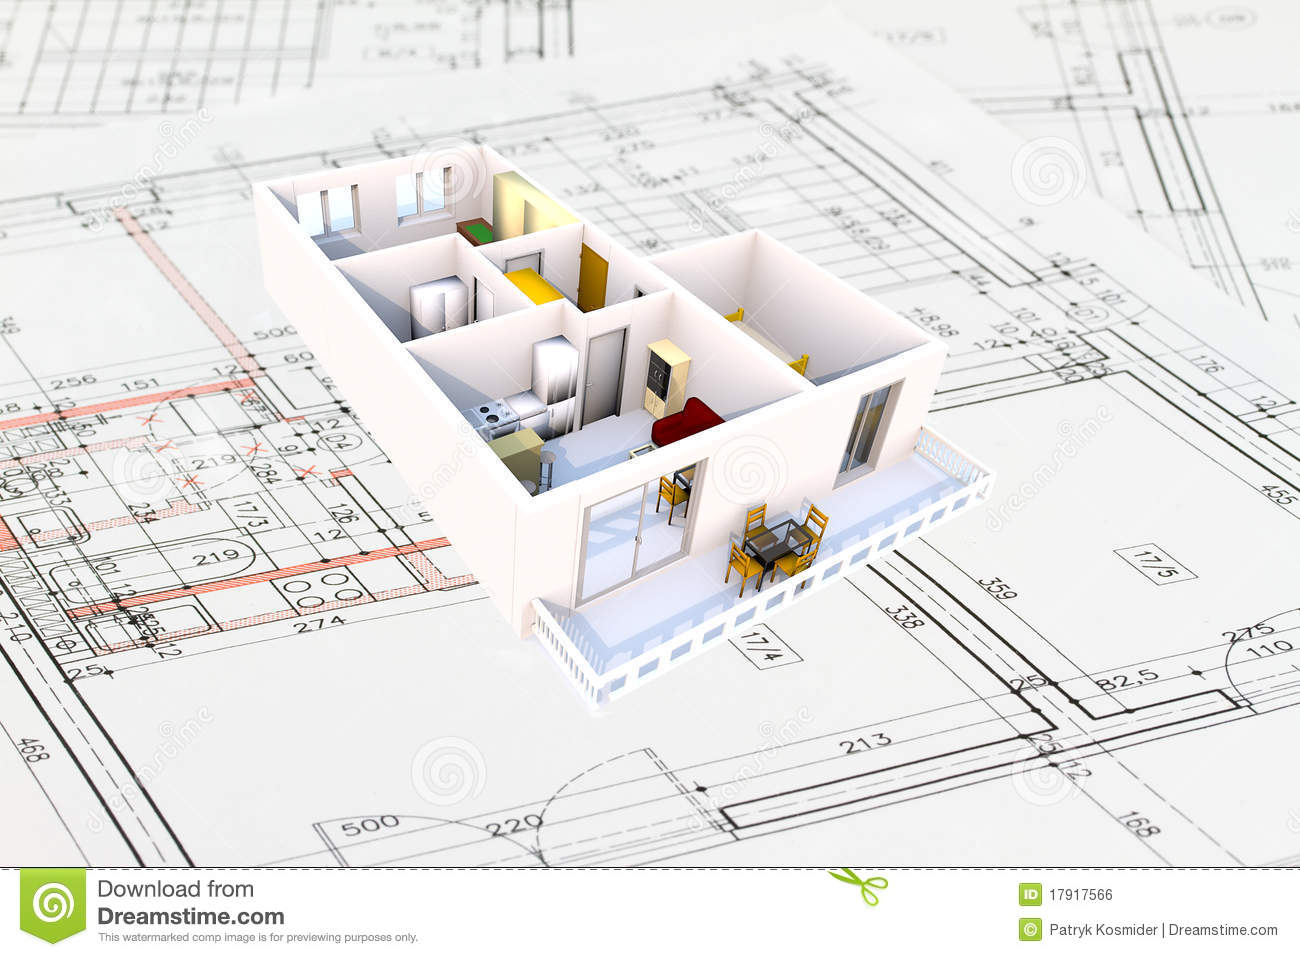 Plan de l 39 appartement 3d image libre de droits image for Plan appartement